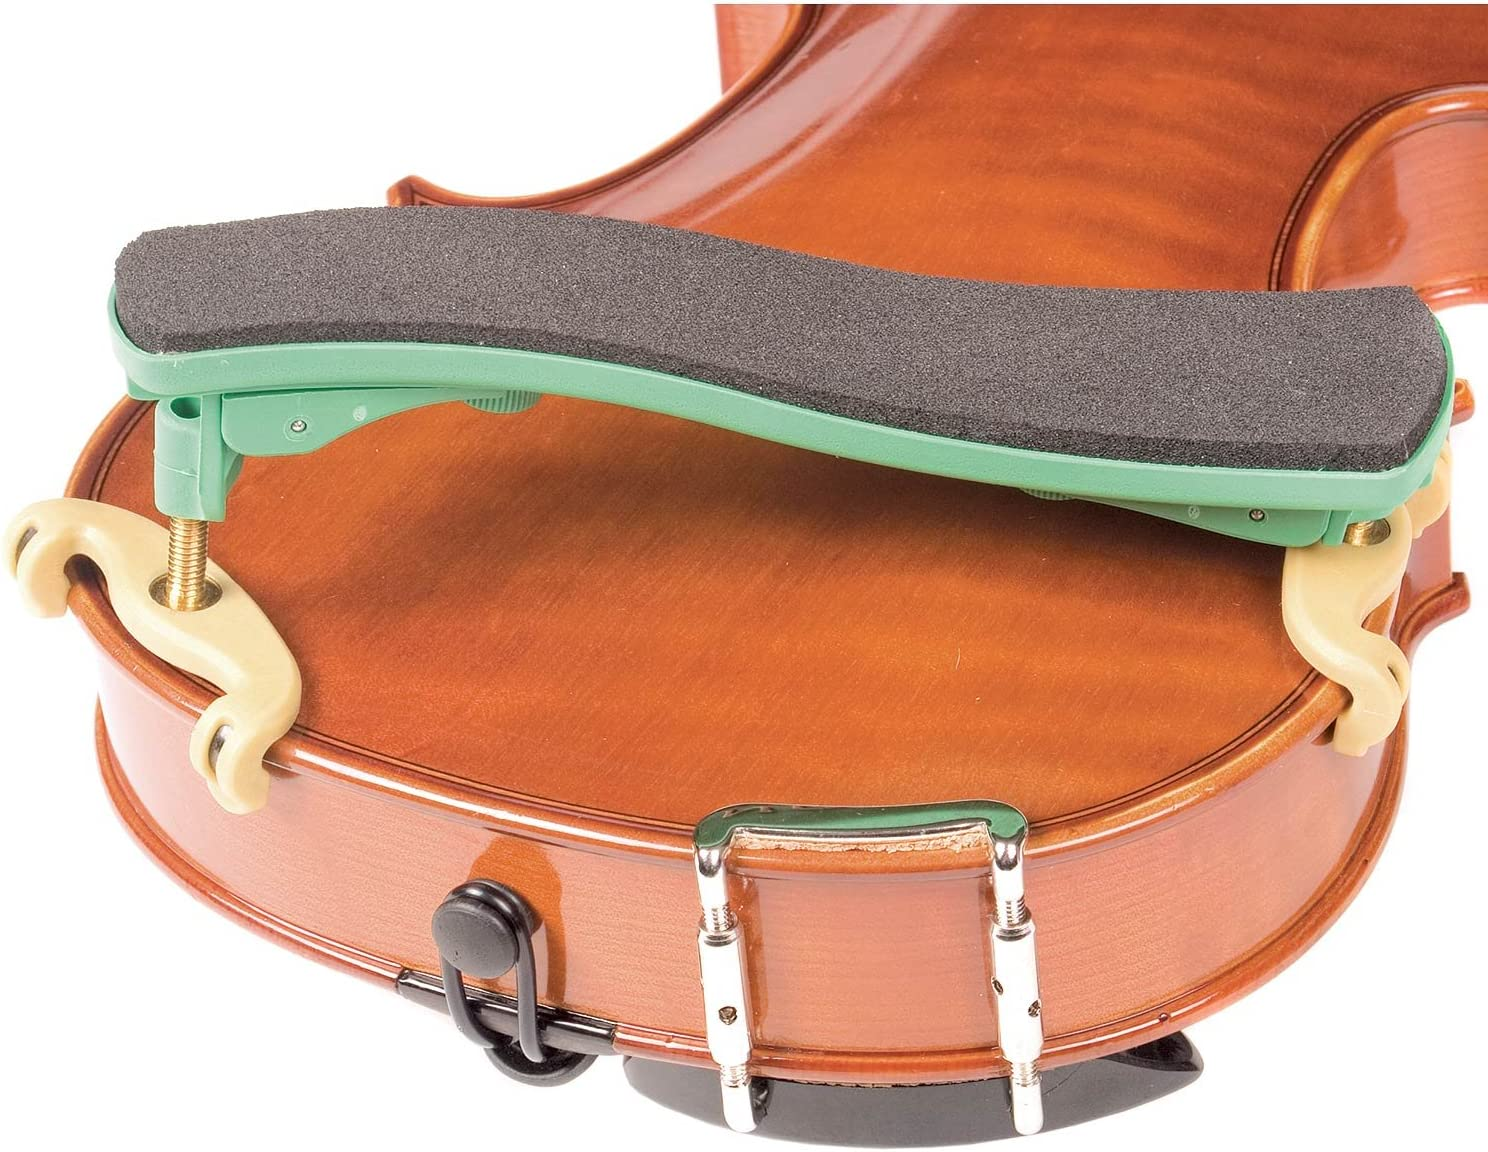 Collapsible Mini Green Instrument Accessories Musical Instruments ...